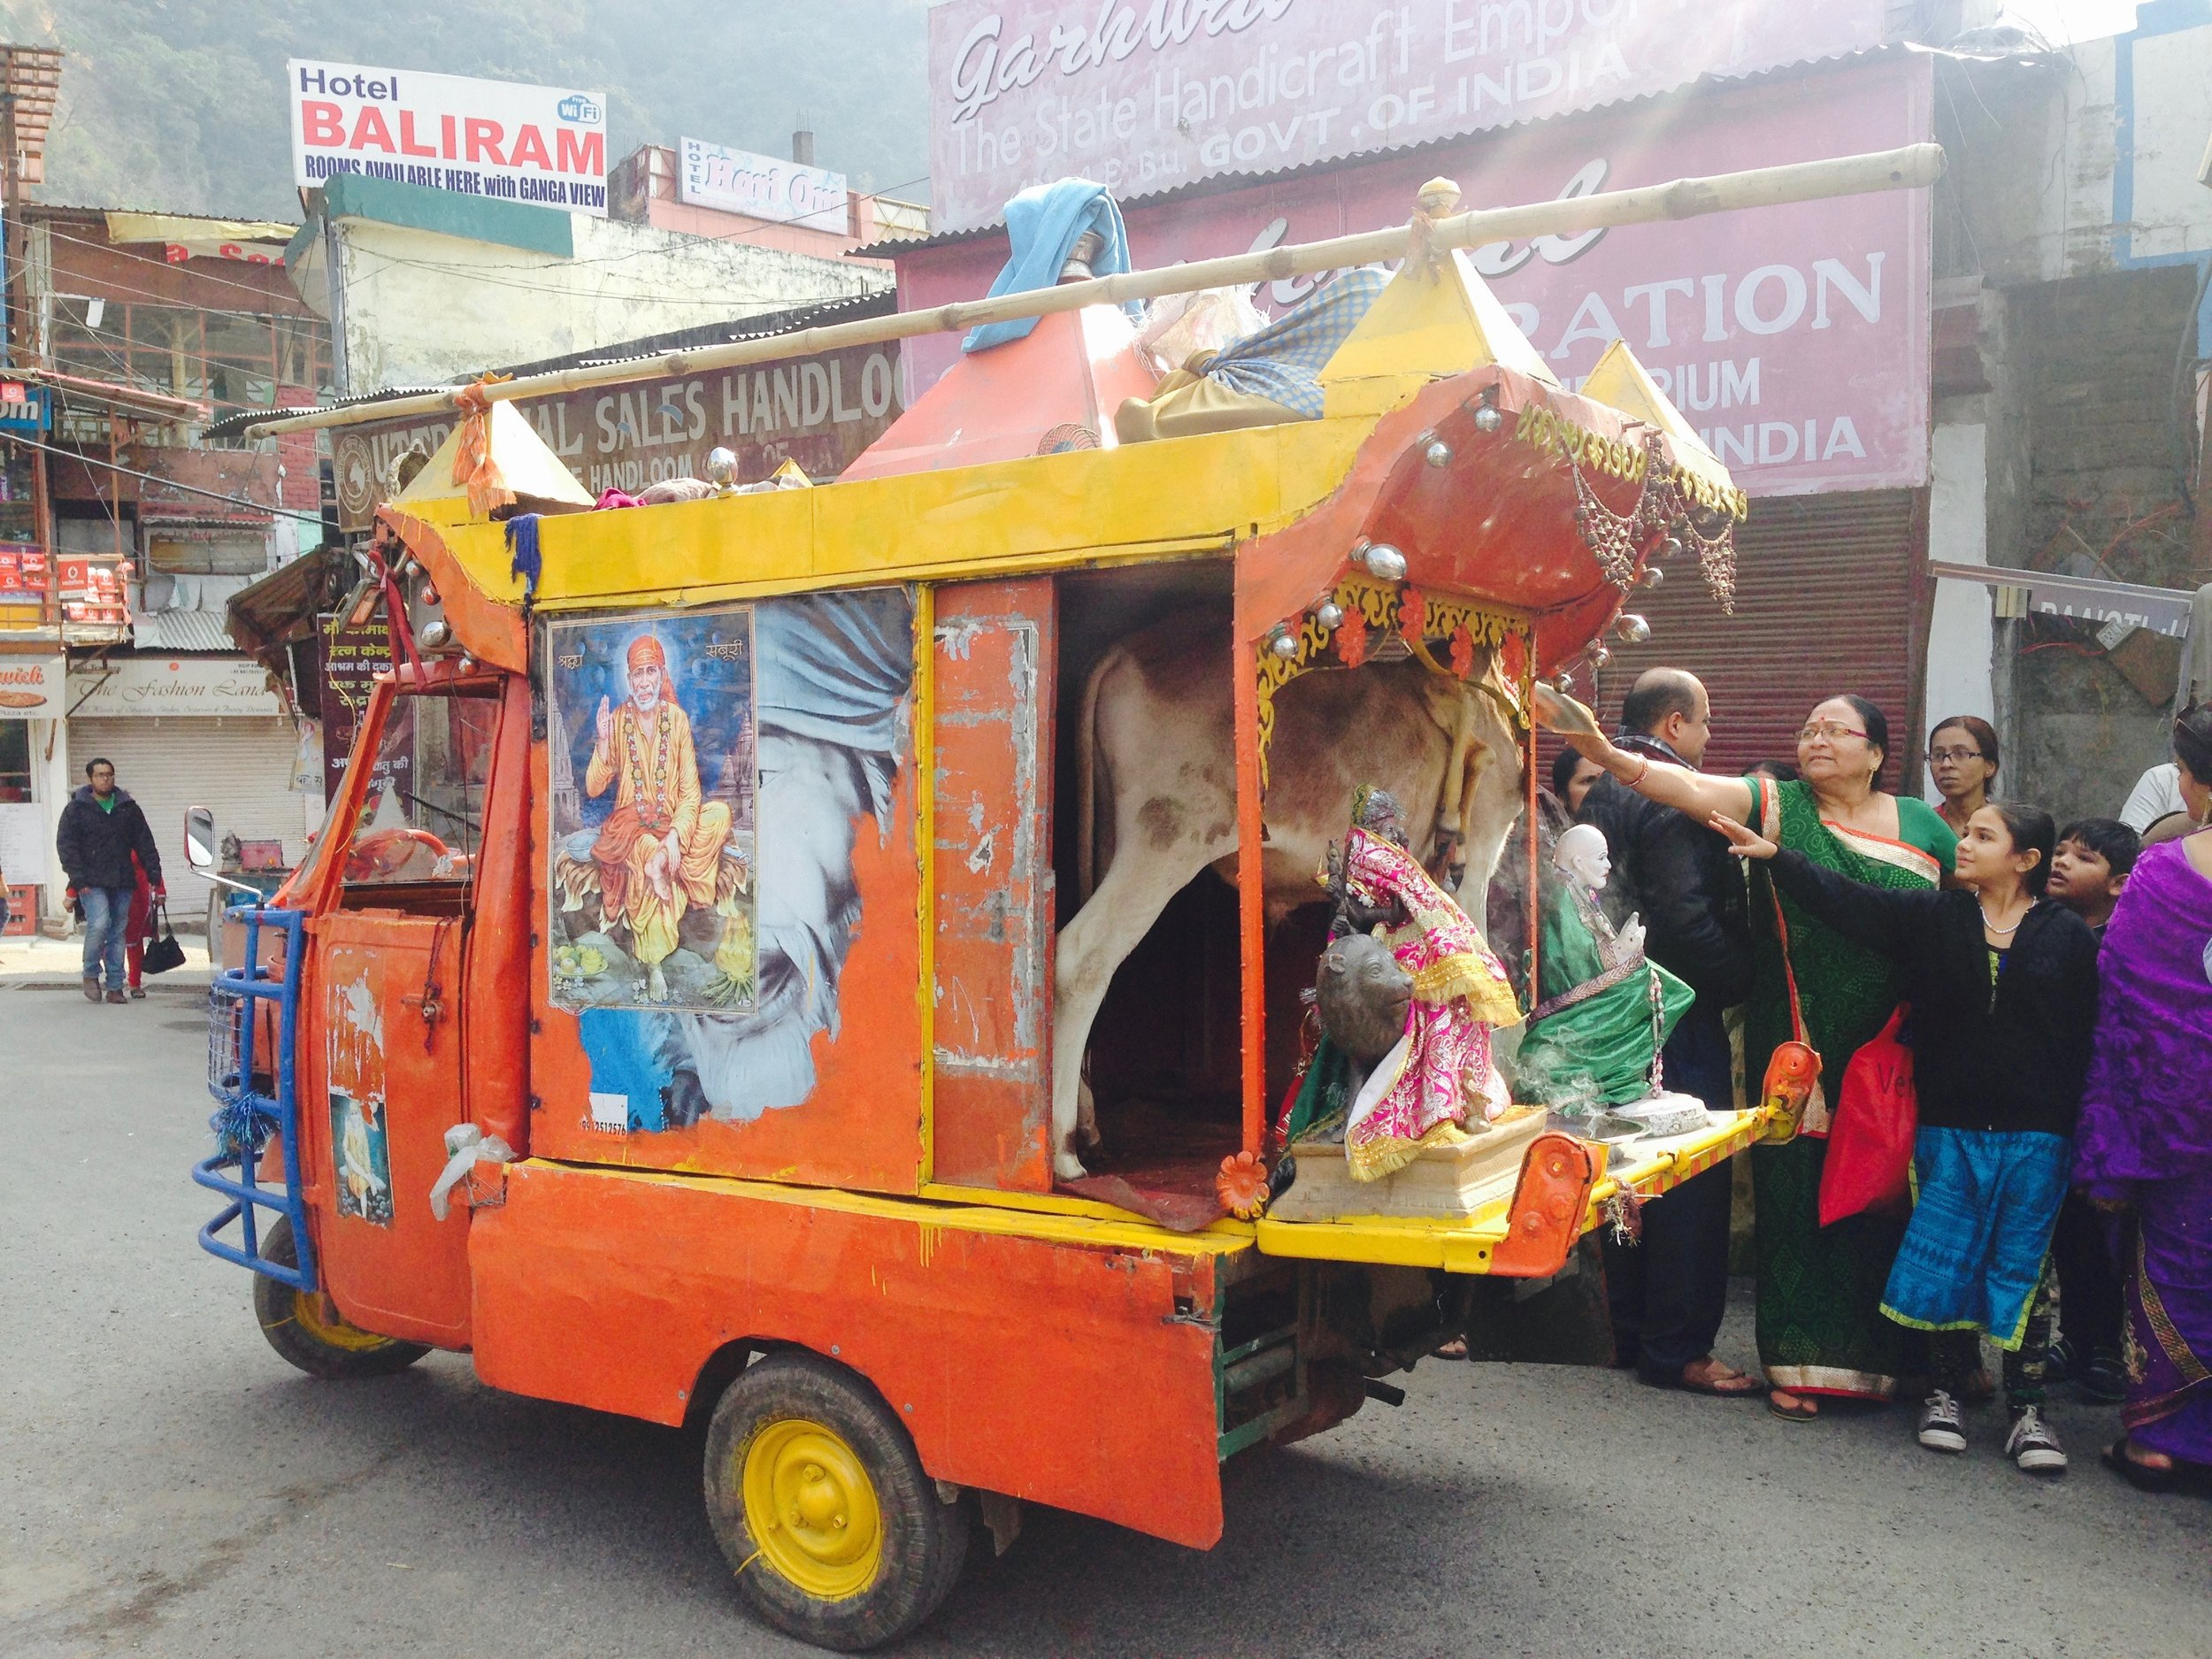 Christmas: an excuse for Indians to load up holy cows in trucks and make some money? It appears so.